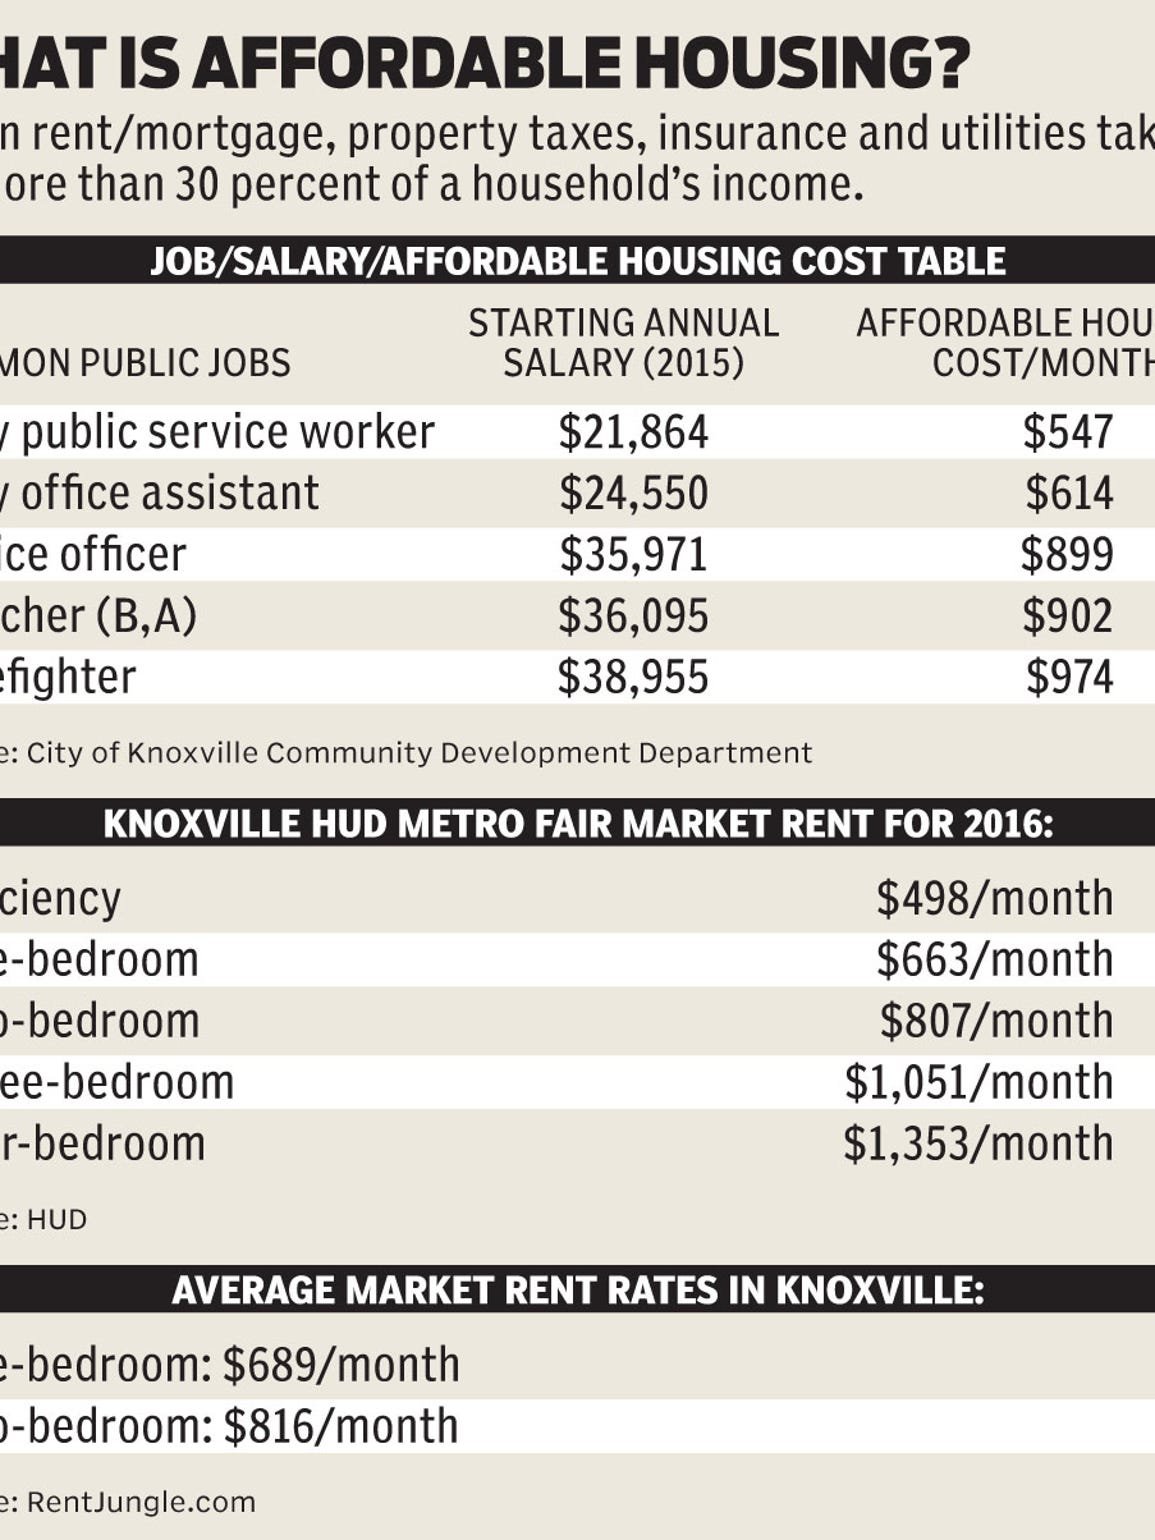 What Is Affordable Housing